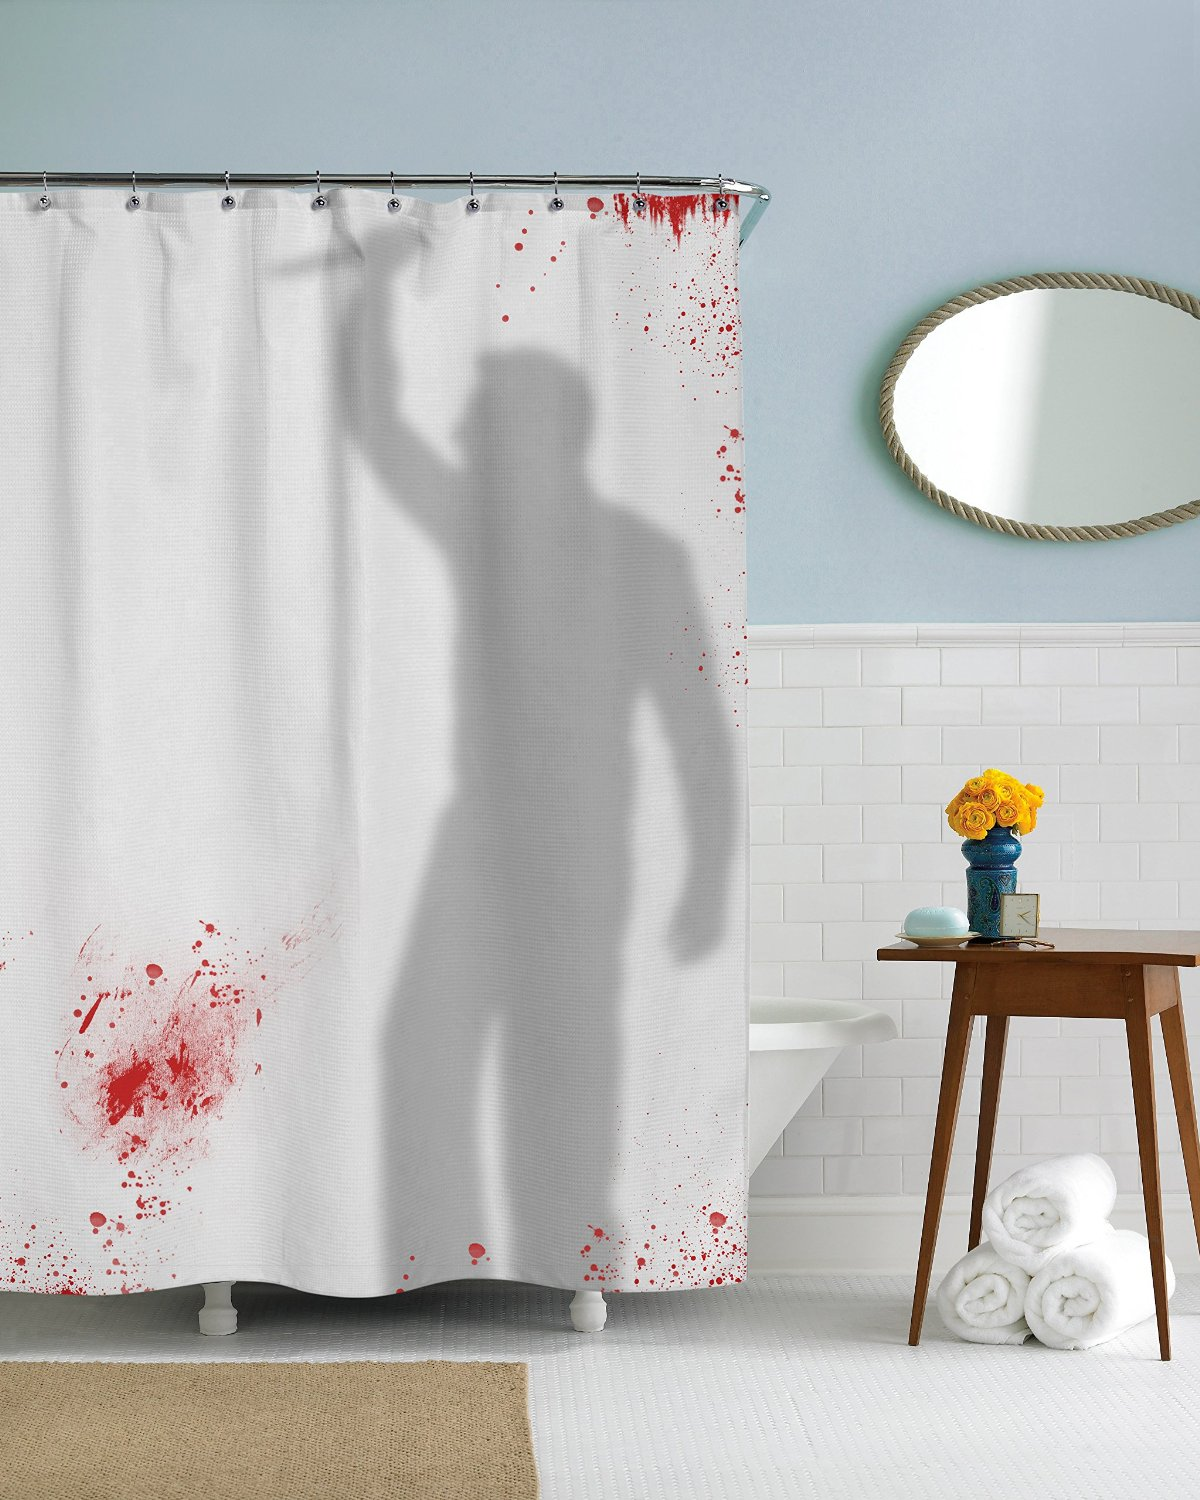 Psycho killer shower curtain amazon halloween shower for Psycho shower curtain and bath mat